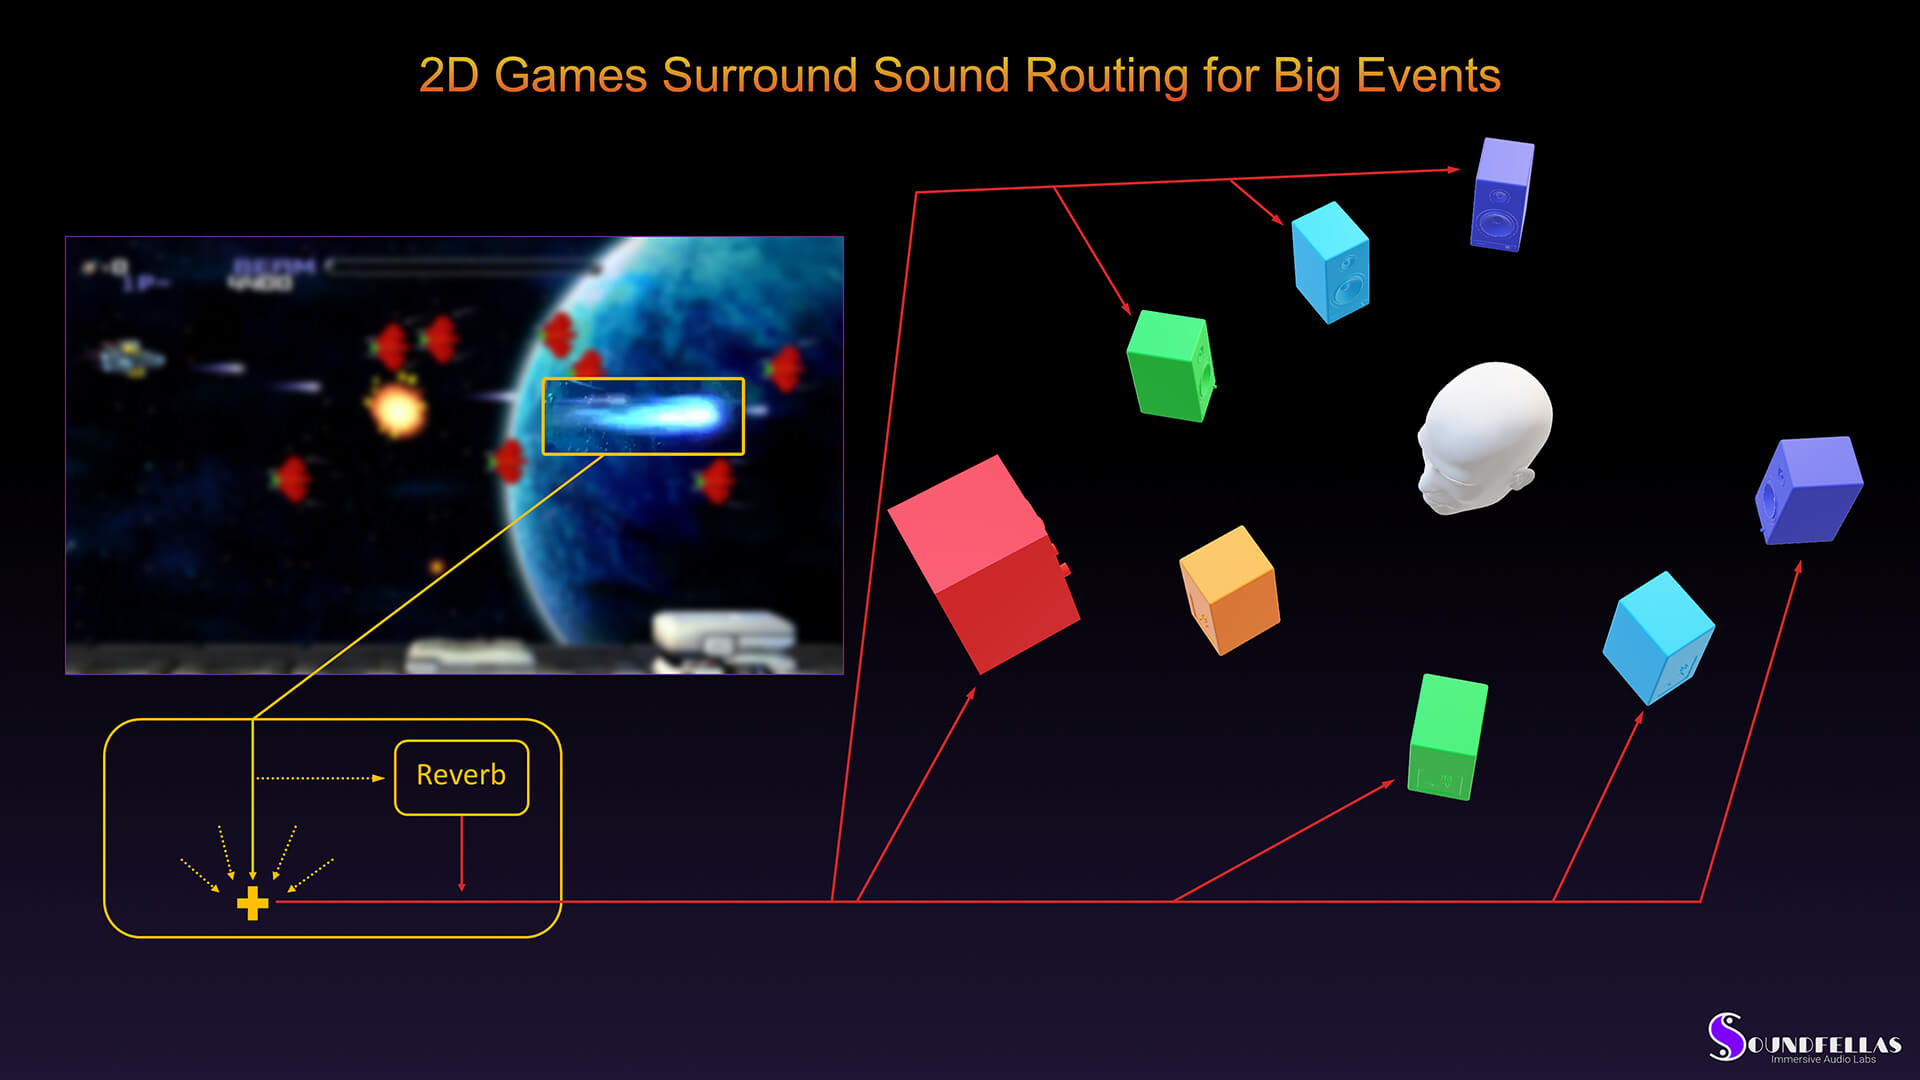 Image of 2D game surround sound routing for big events.